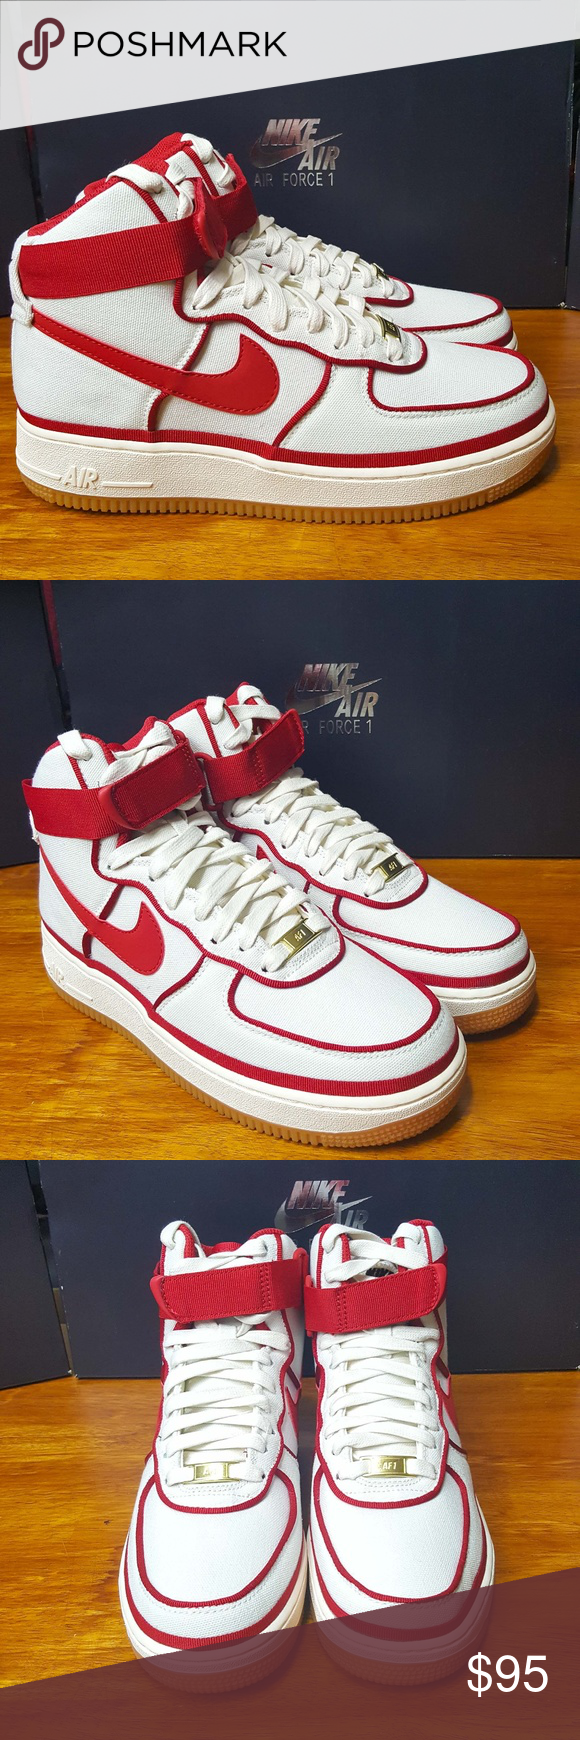 Details about *New* Nike Air Force 1 High '07 LV8 Men's Size SailGym Red Black 806403 101